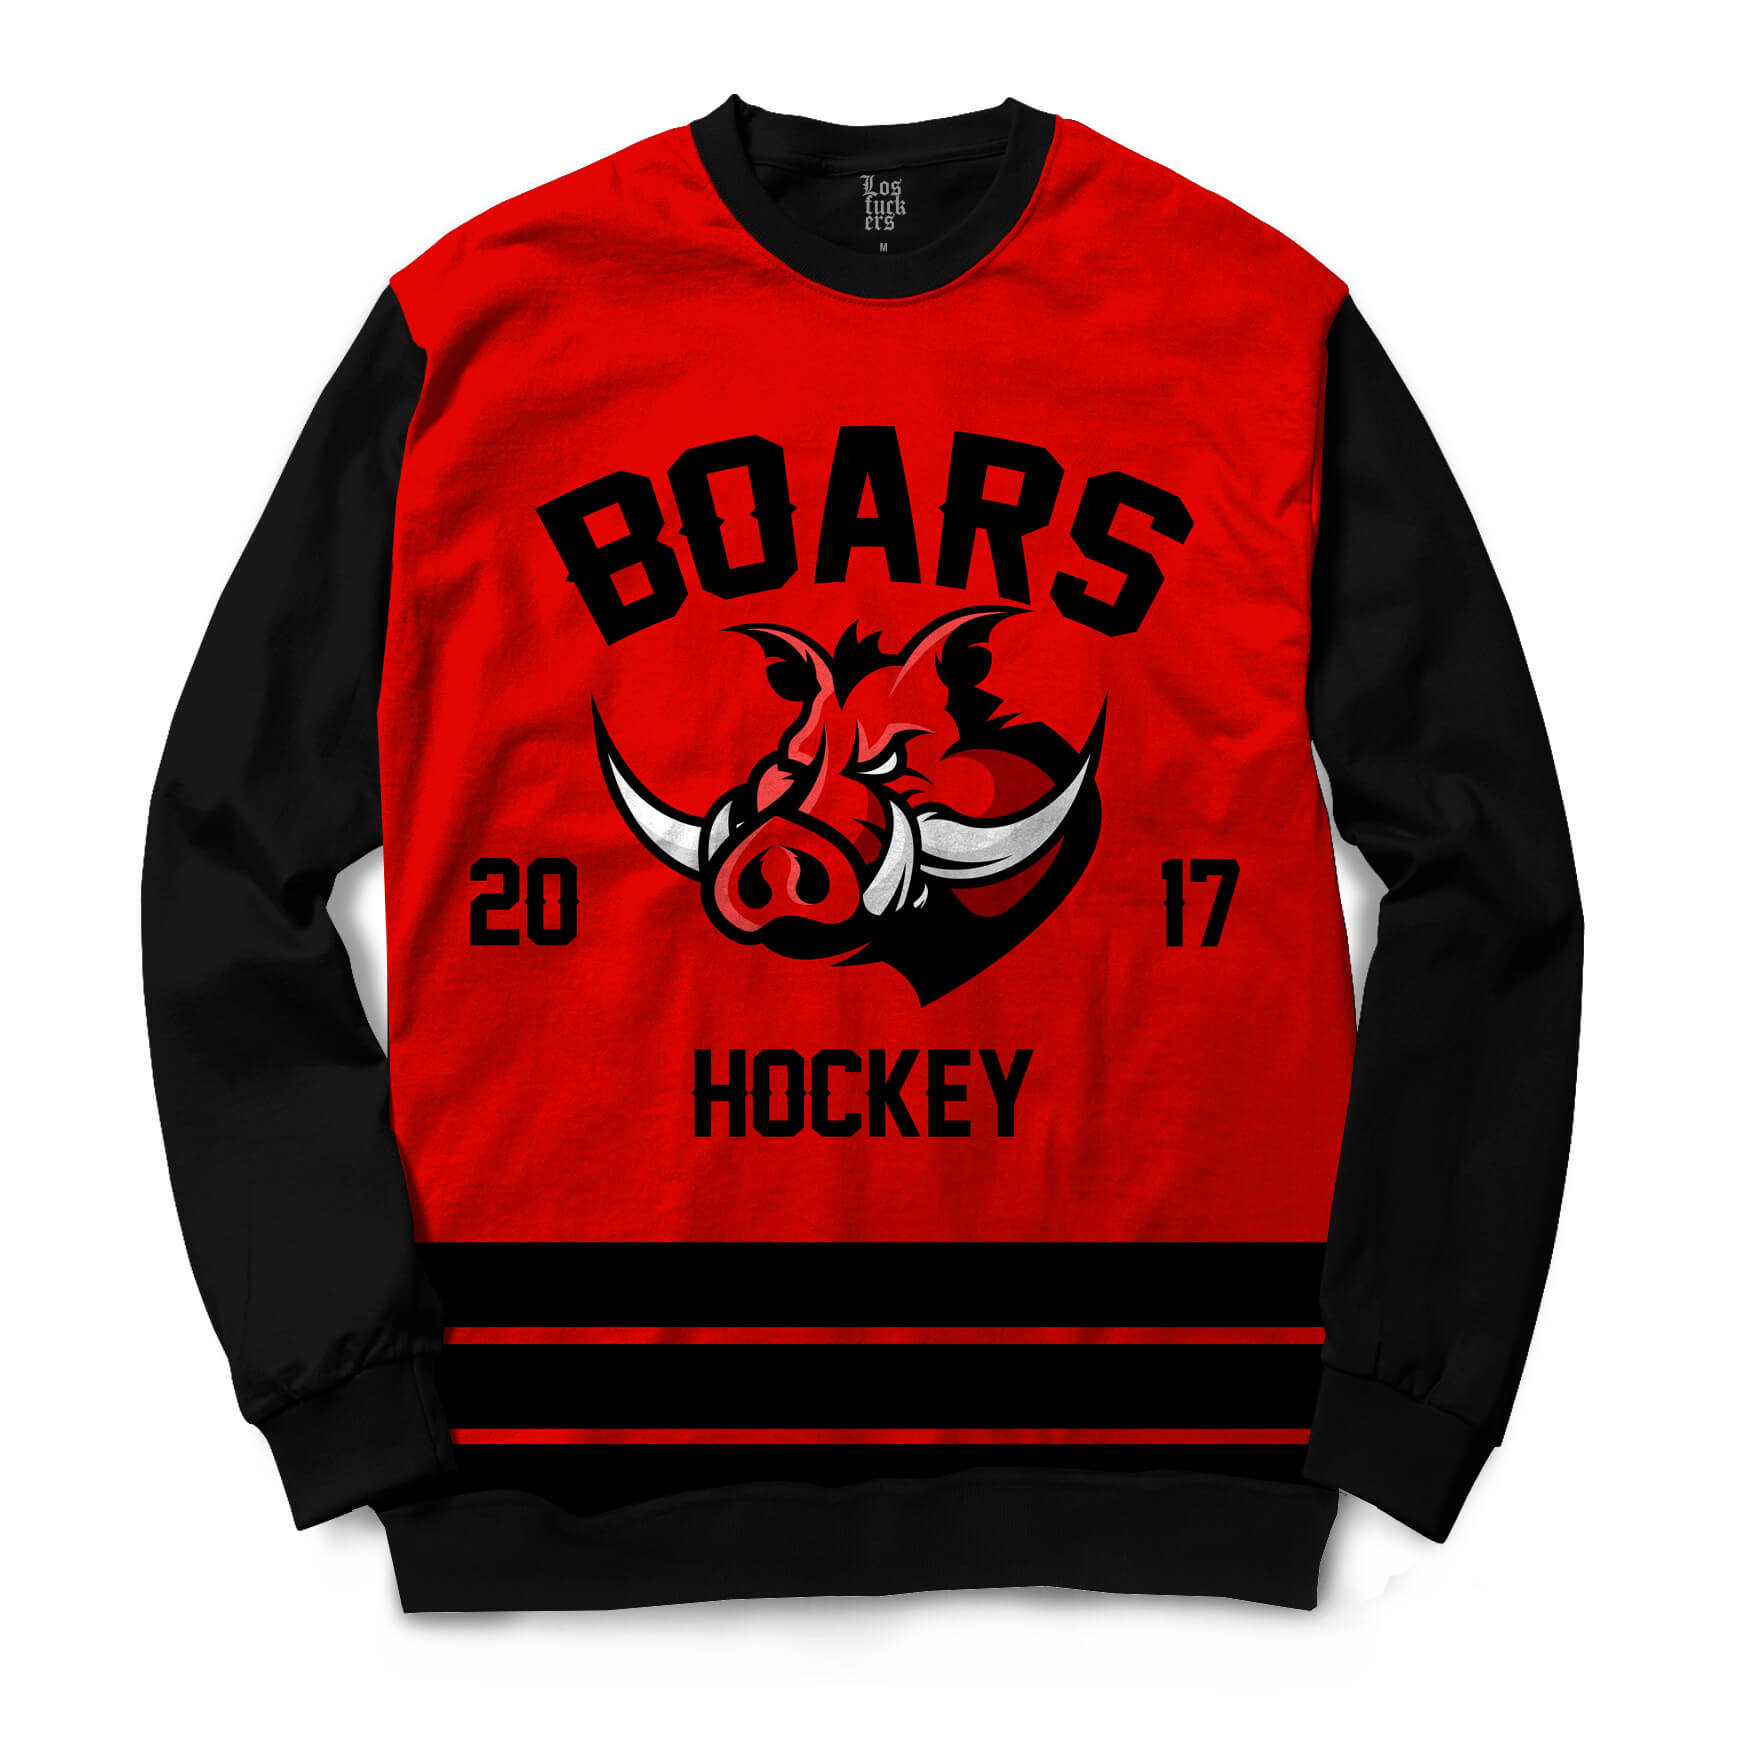 Moletom Gola Careca Los Fuckers Hockey Boars Full Print Preto / Vermelho